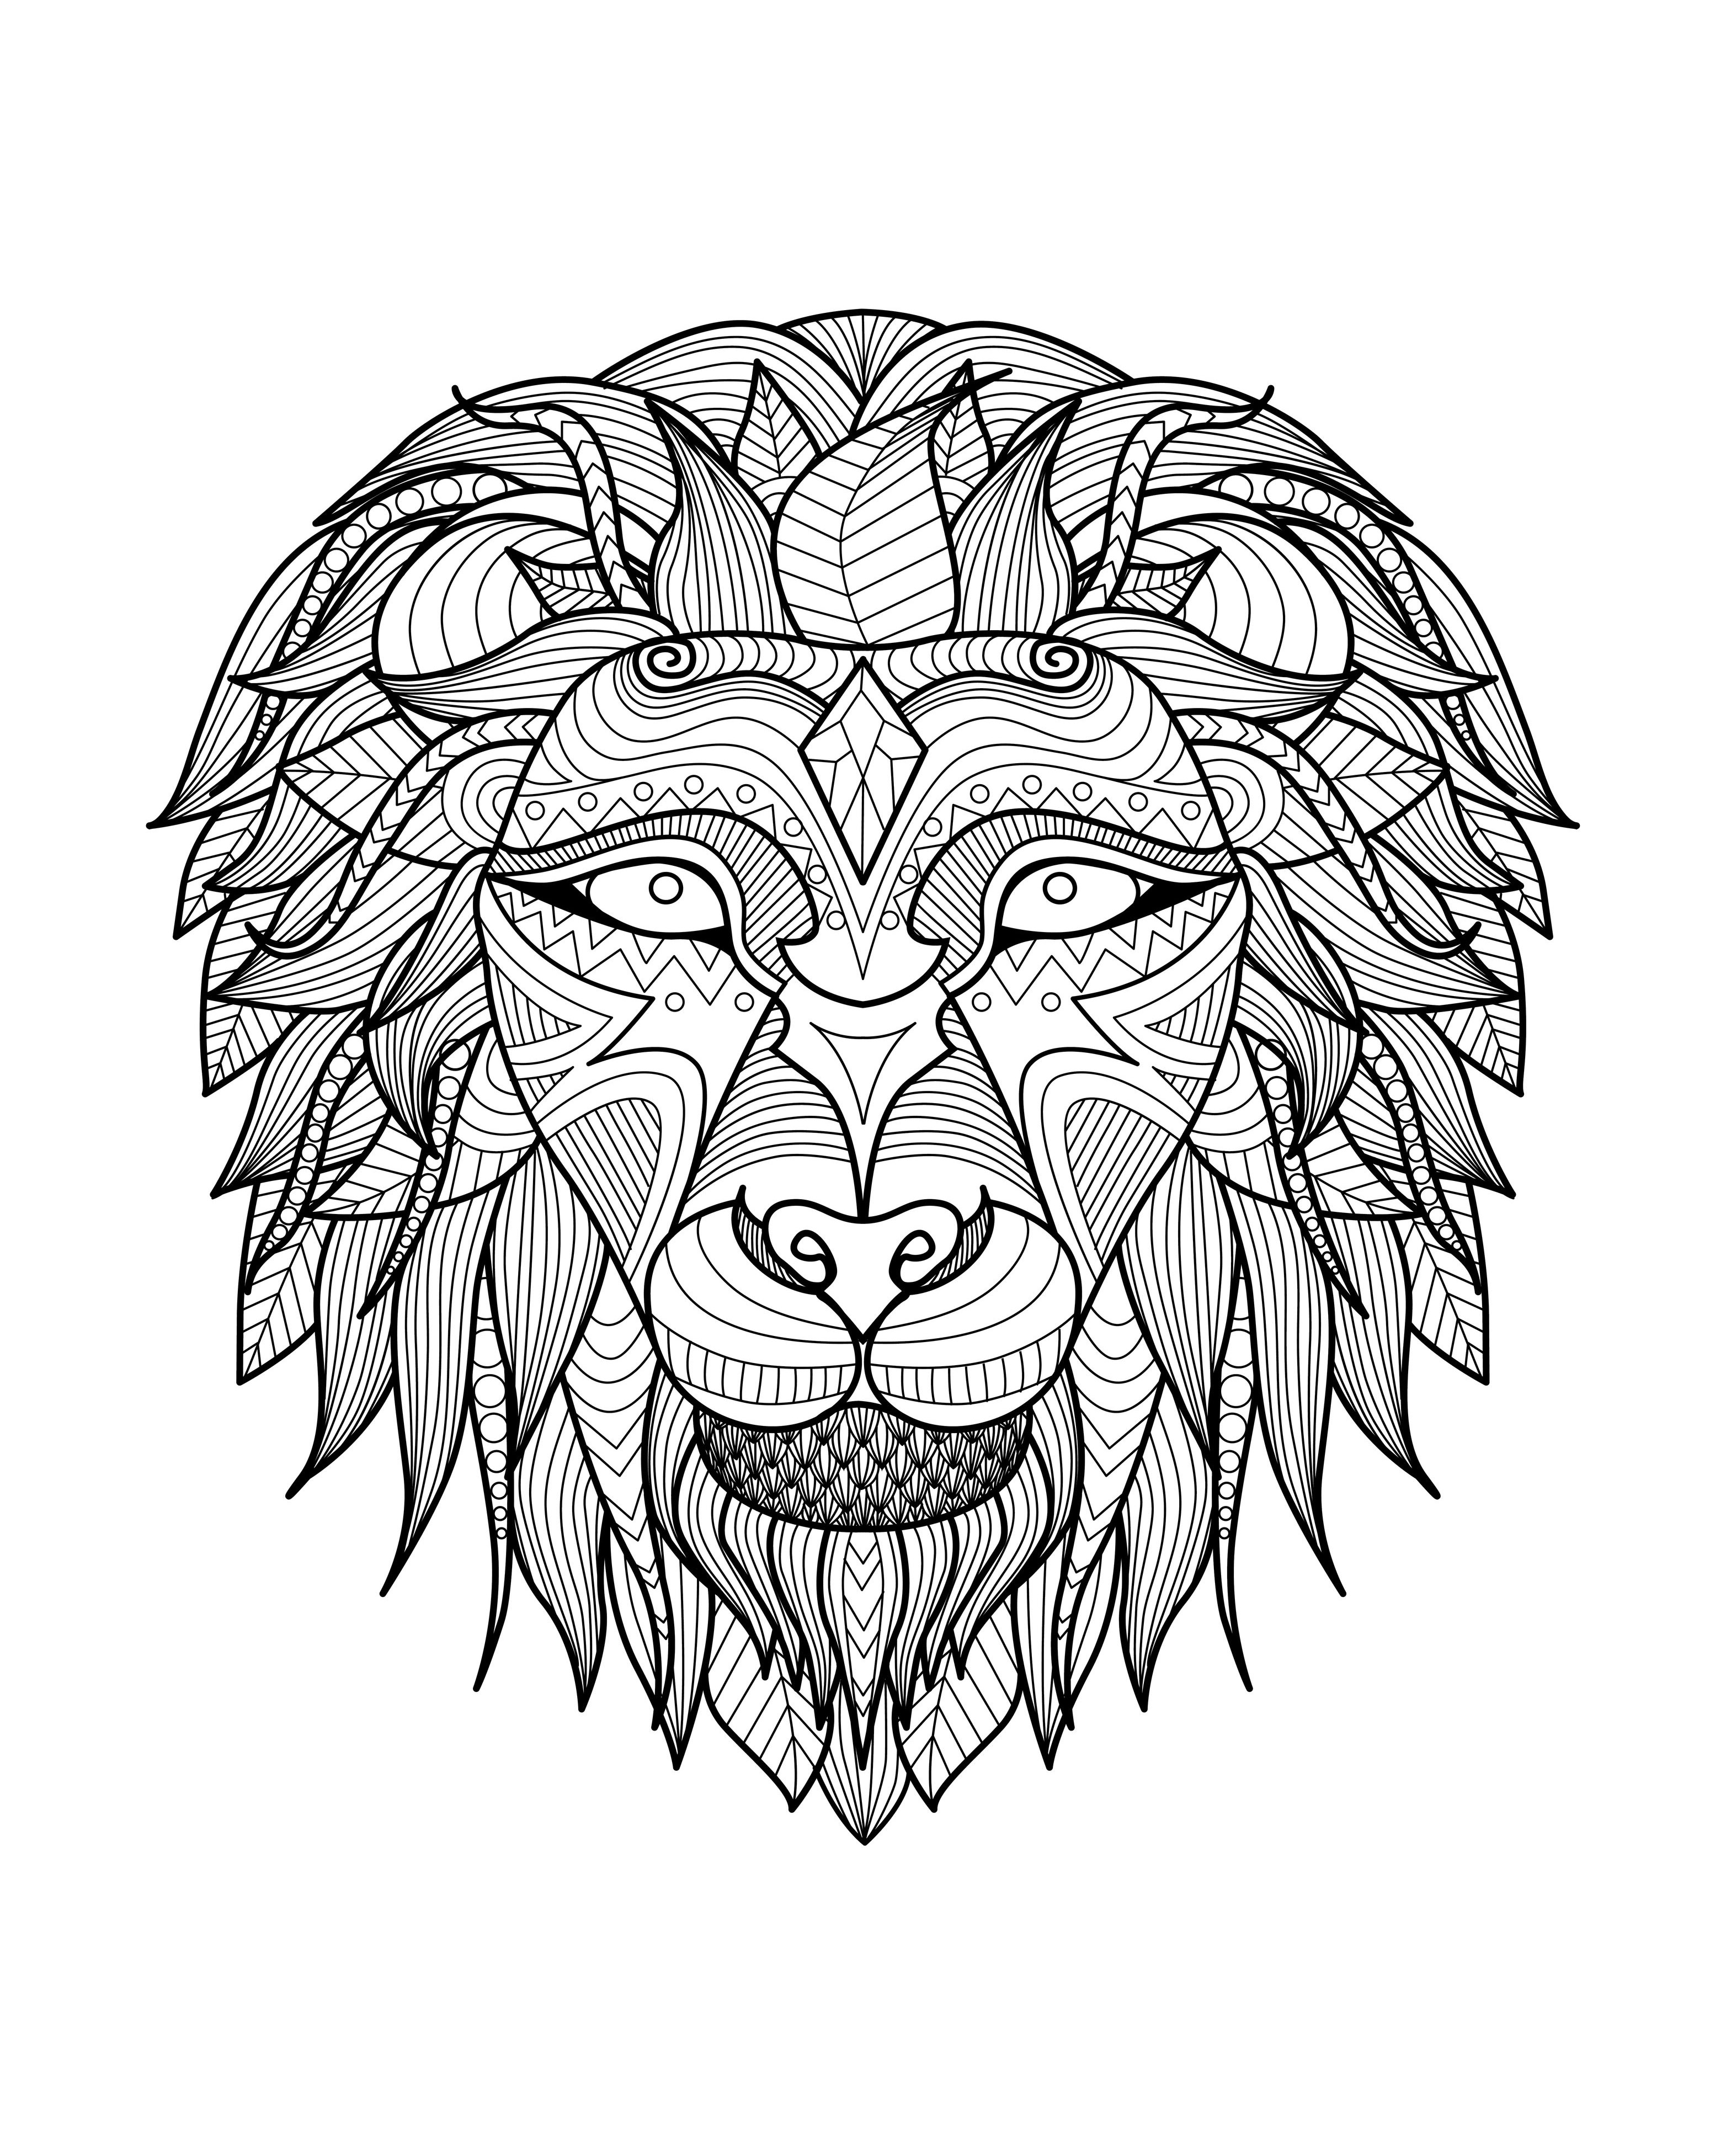 3128x3907 Value Lion Mandala Coloring Pages Just Color For Adults